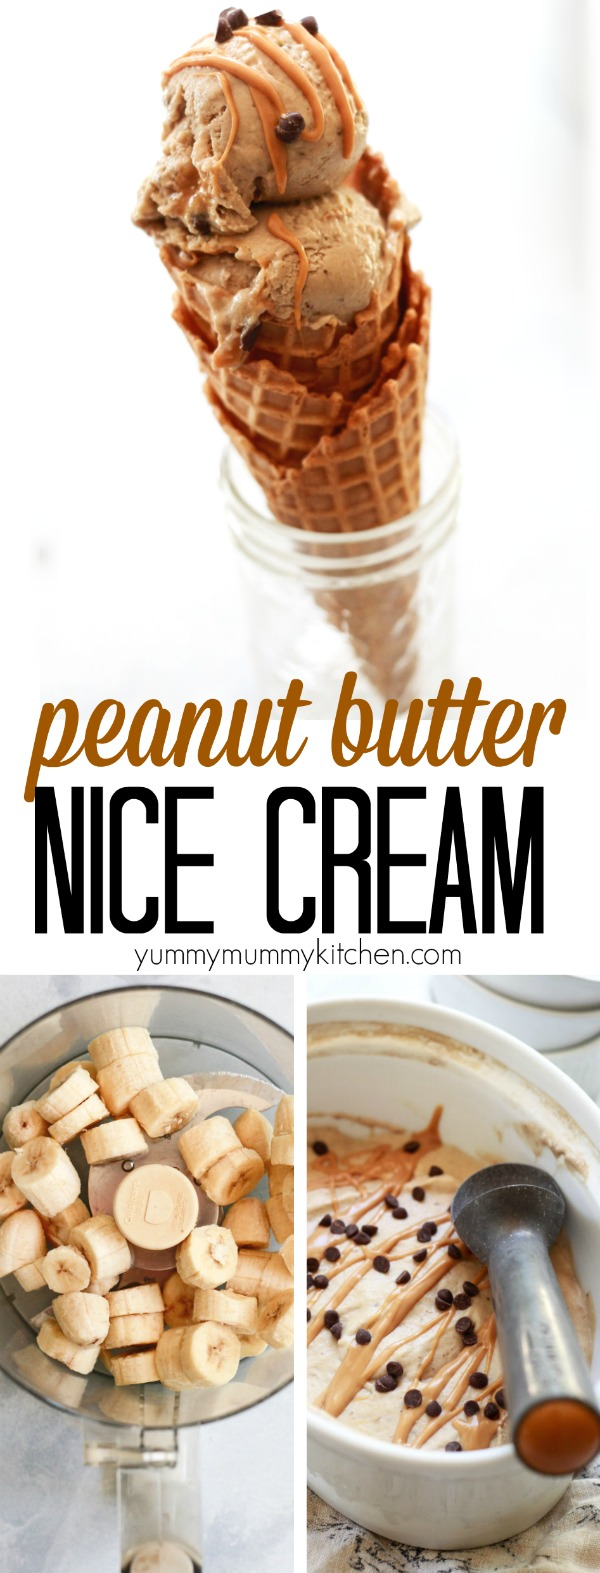 Banana nice cream flavored with peanut butter and chocolate chips is an easy, healthier, dairy-free vegan ice cream dessert recipe made with real food ingredients. Banana nice cream is a great recipe for kids to help make.